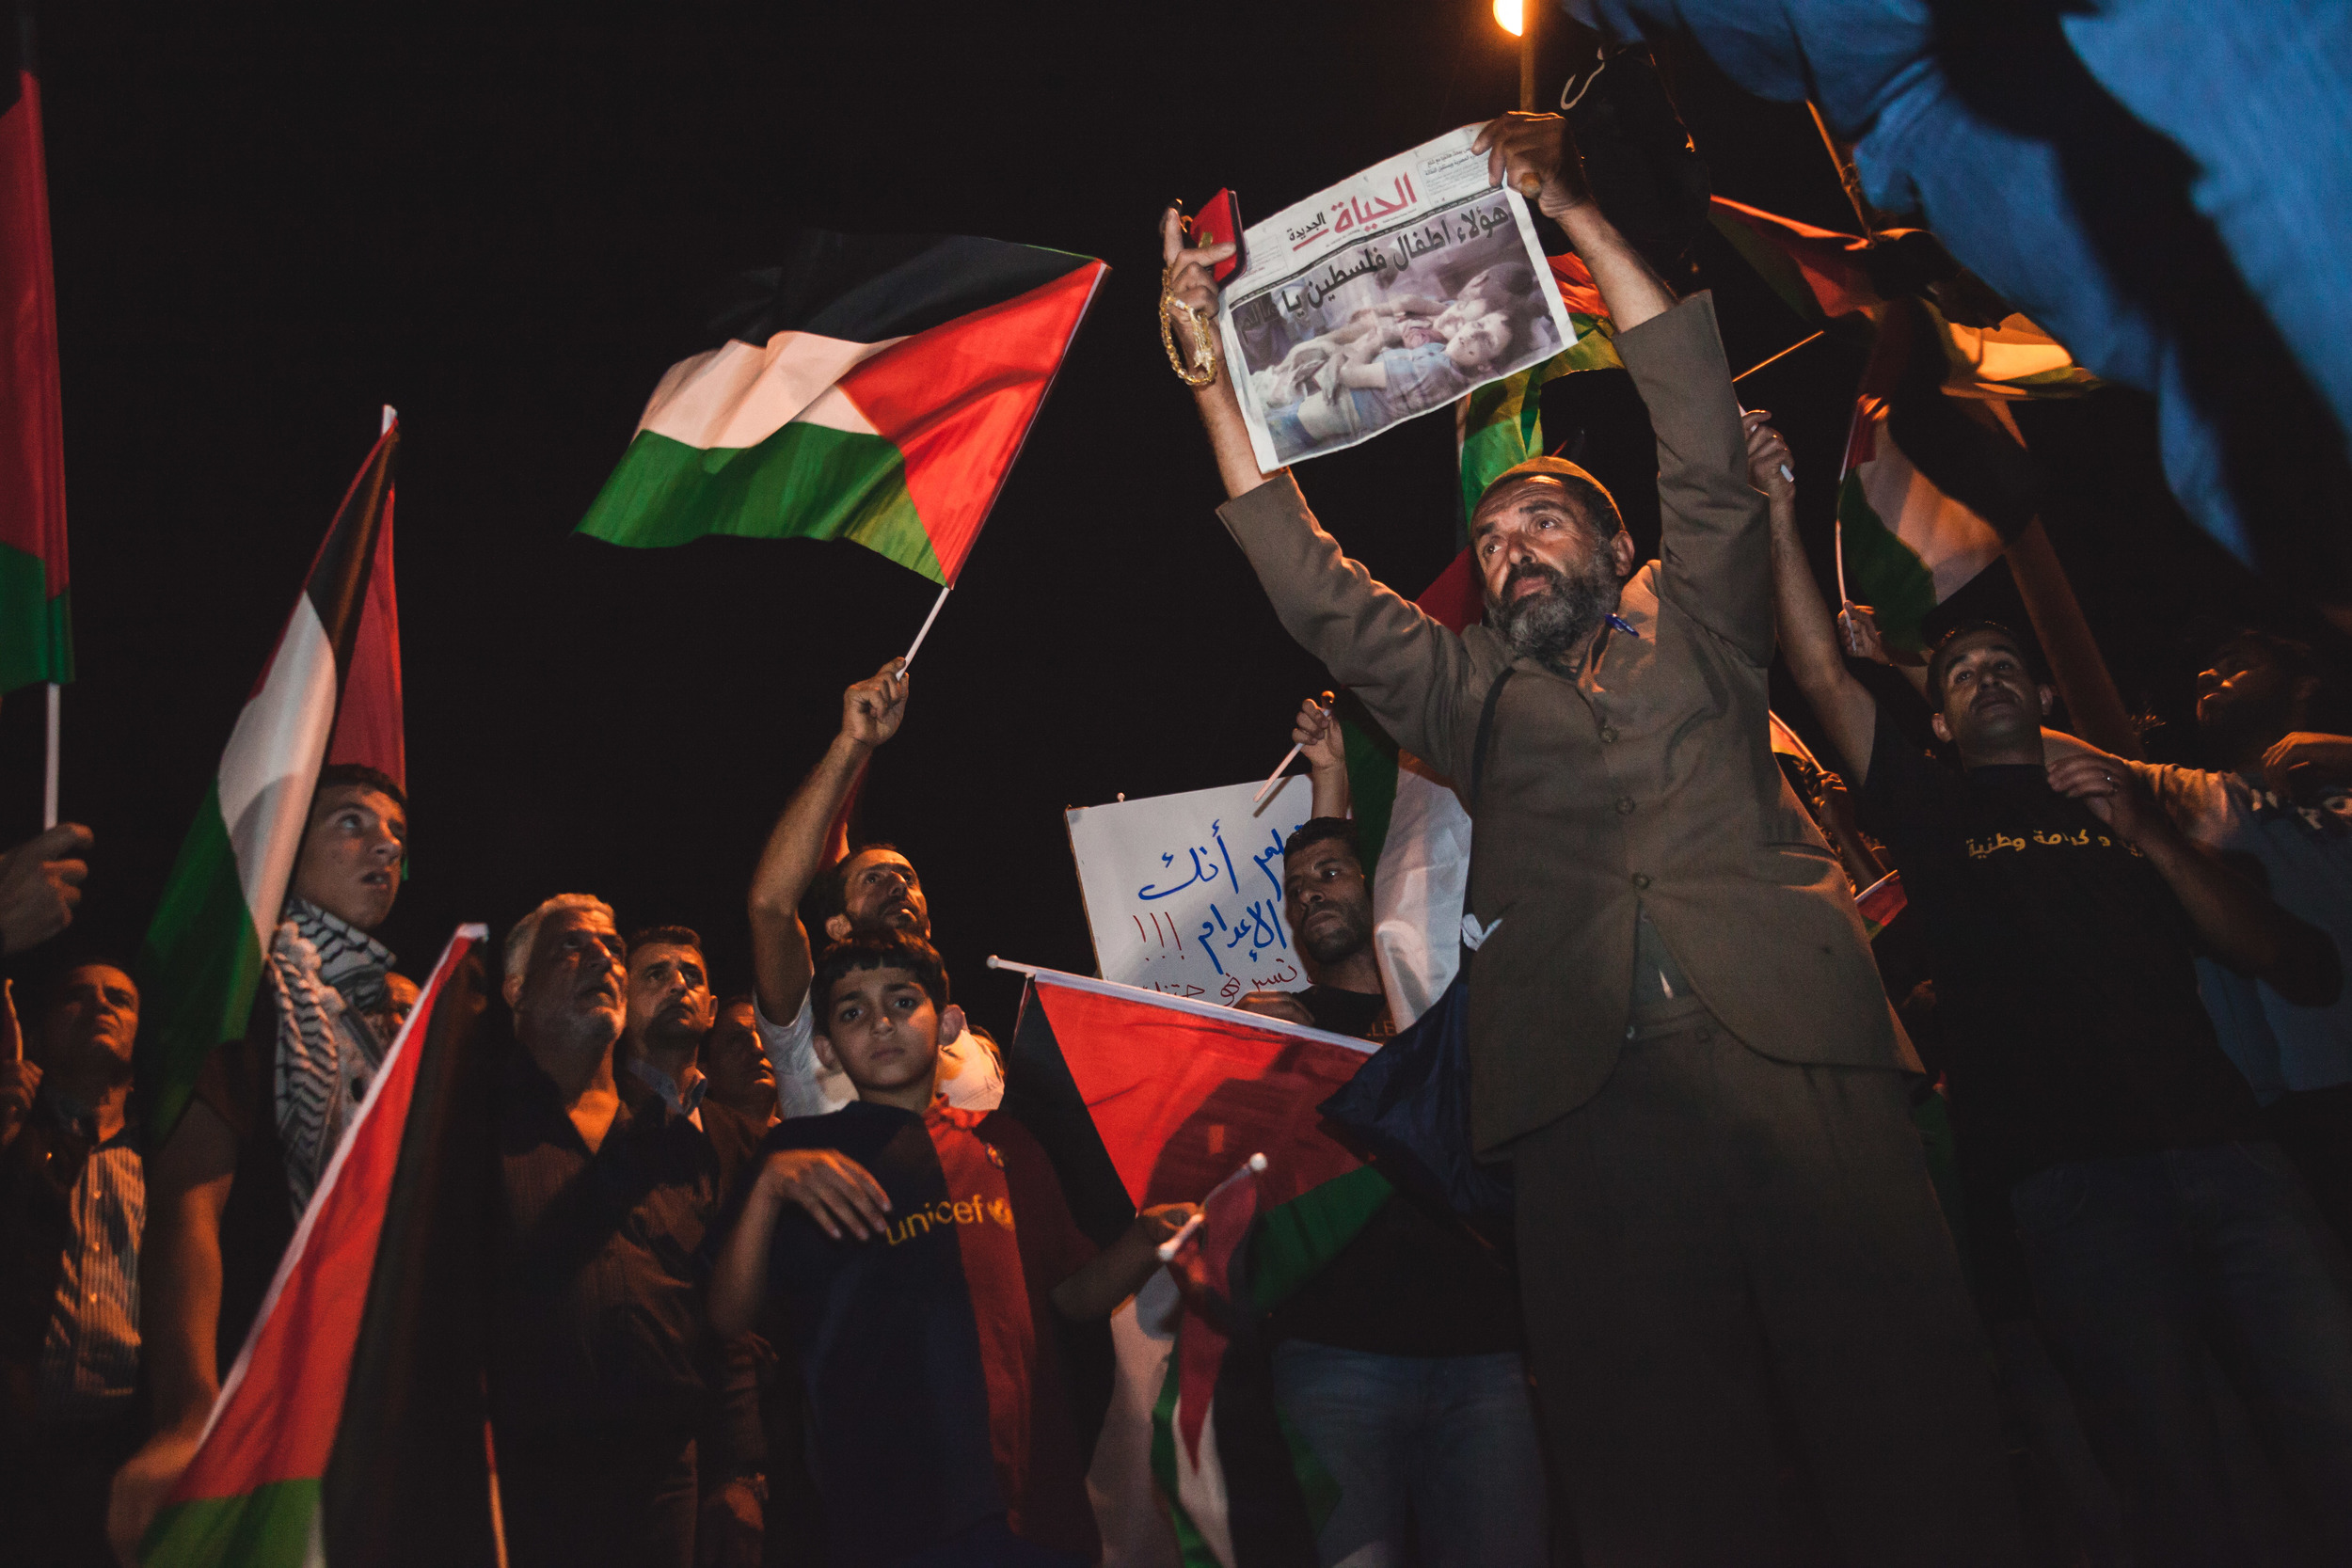 While the evenings protest was still in its early stages, a demonstrator holds up a newspaper with an image from Gaza prominently displayed as thousands gathersaround the main junction of Al-Amari Refugee Camp waiting for the demonstrations to begin.